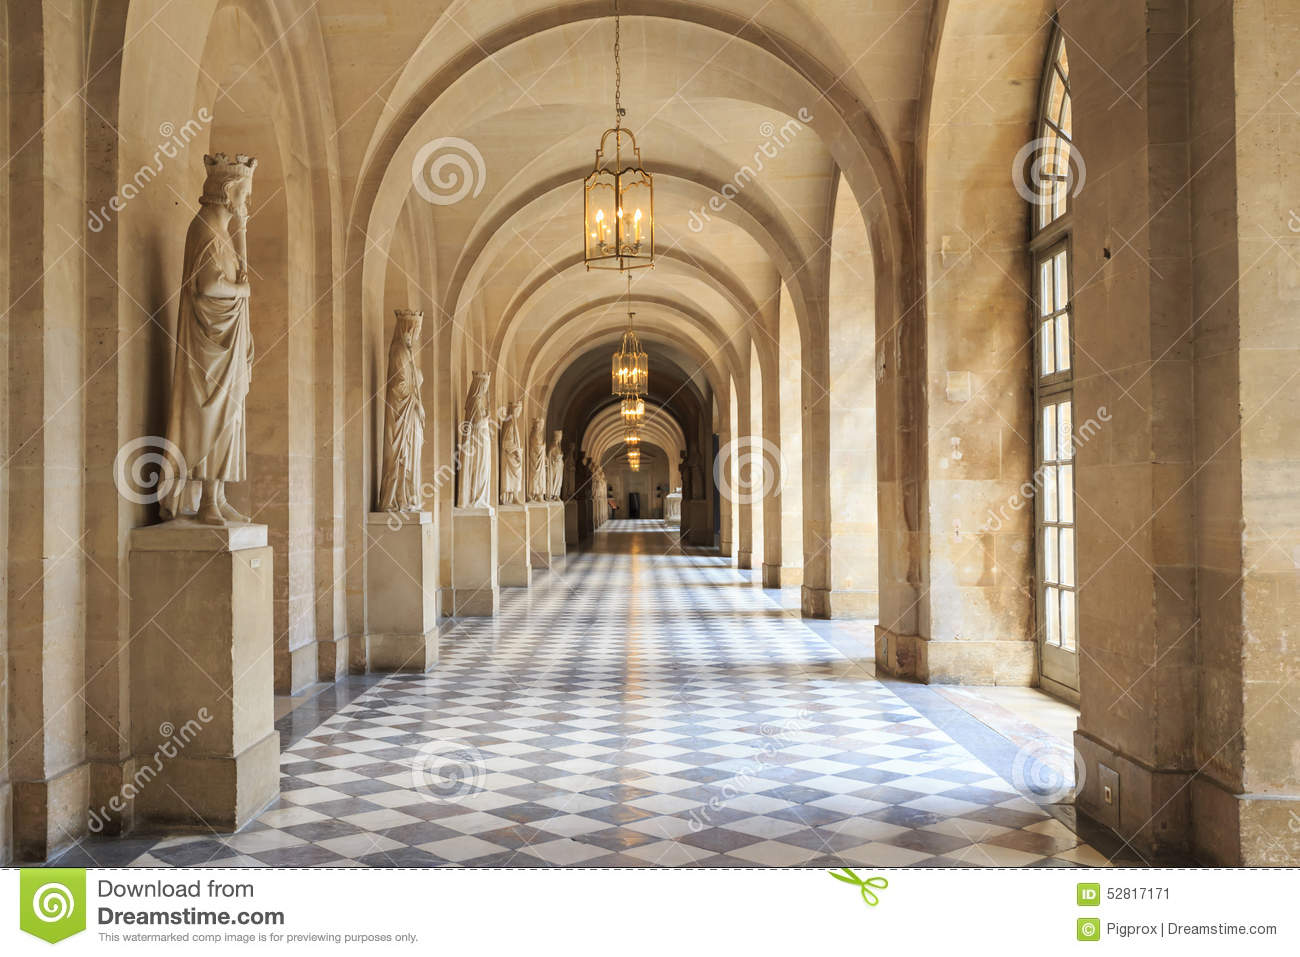 Ch teau int rieur de versailles versailles france photo for Chateau de versailles interieur